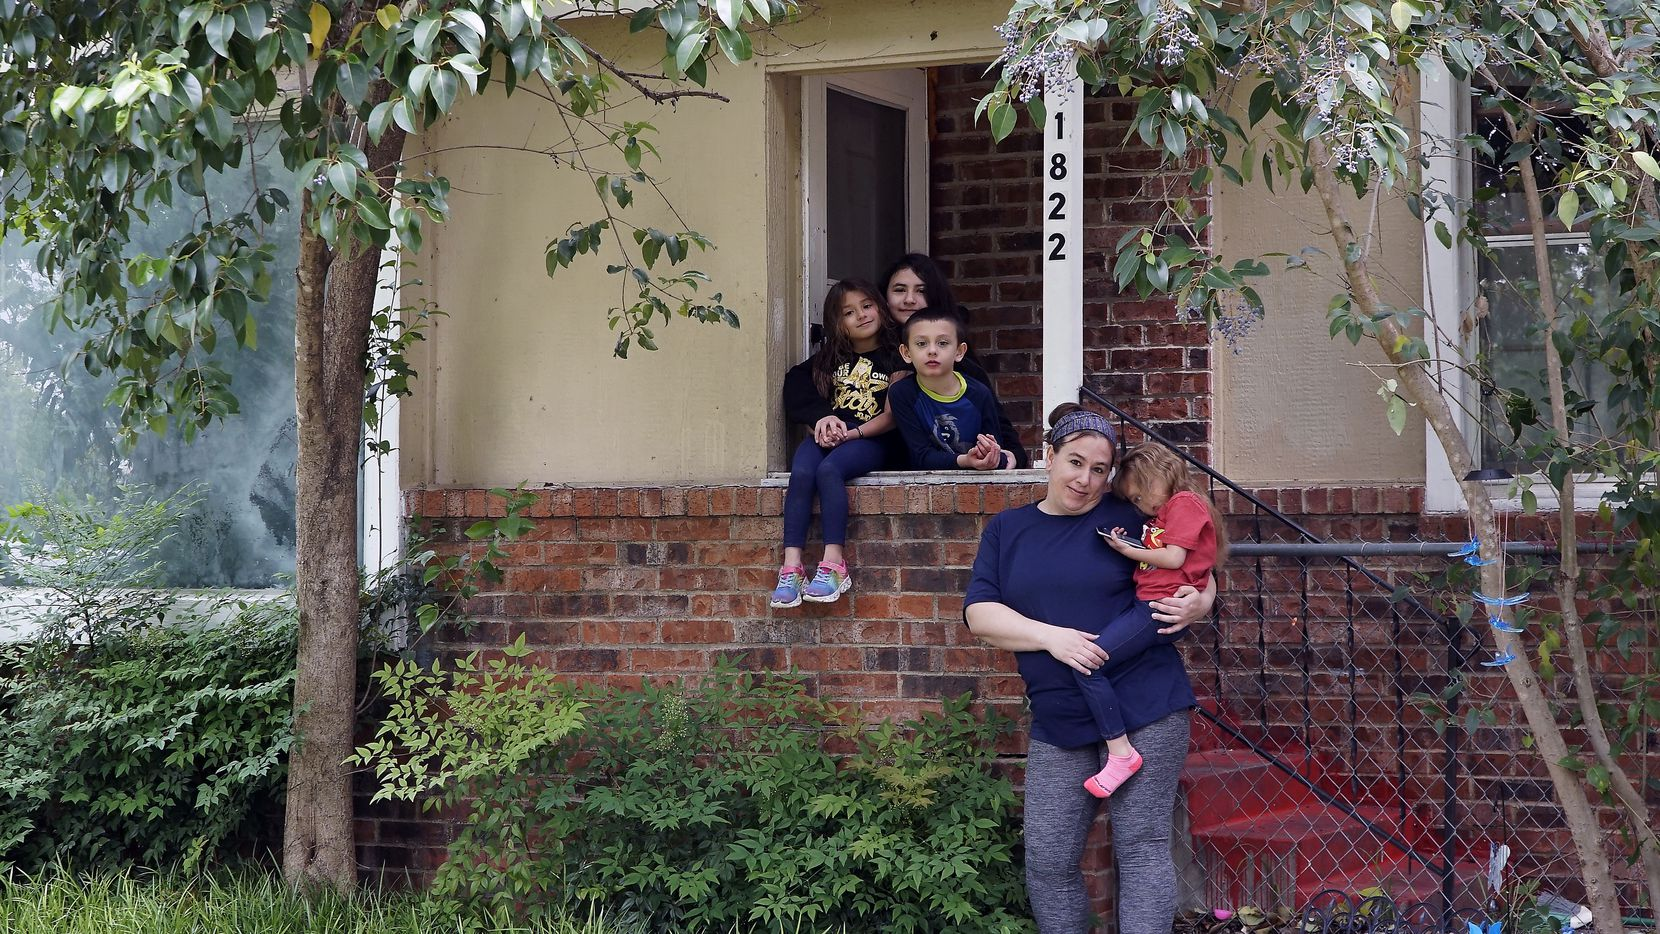 Christina Segundo and her four children (l-r) Isabella (6), Tarianna (11), Braylen (8), and Mia (5), at their home in Fort Worth on Tuesday, April 14, 2020.